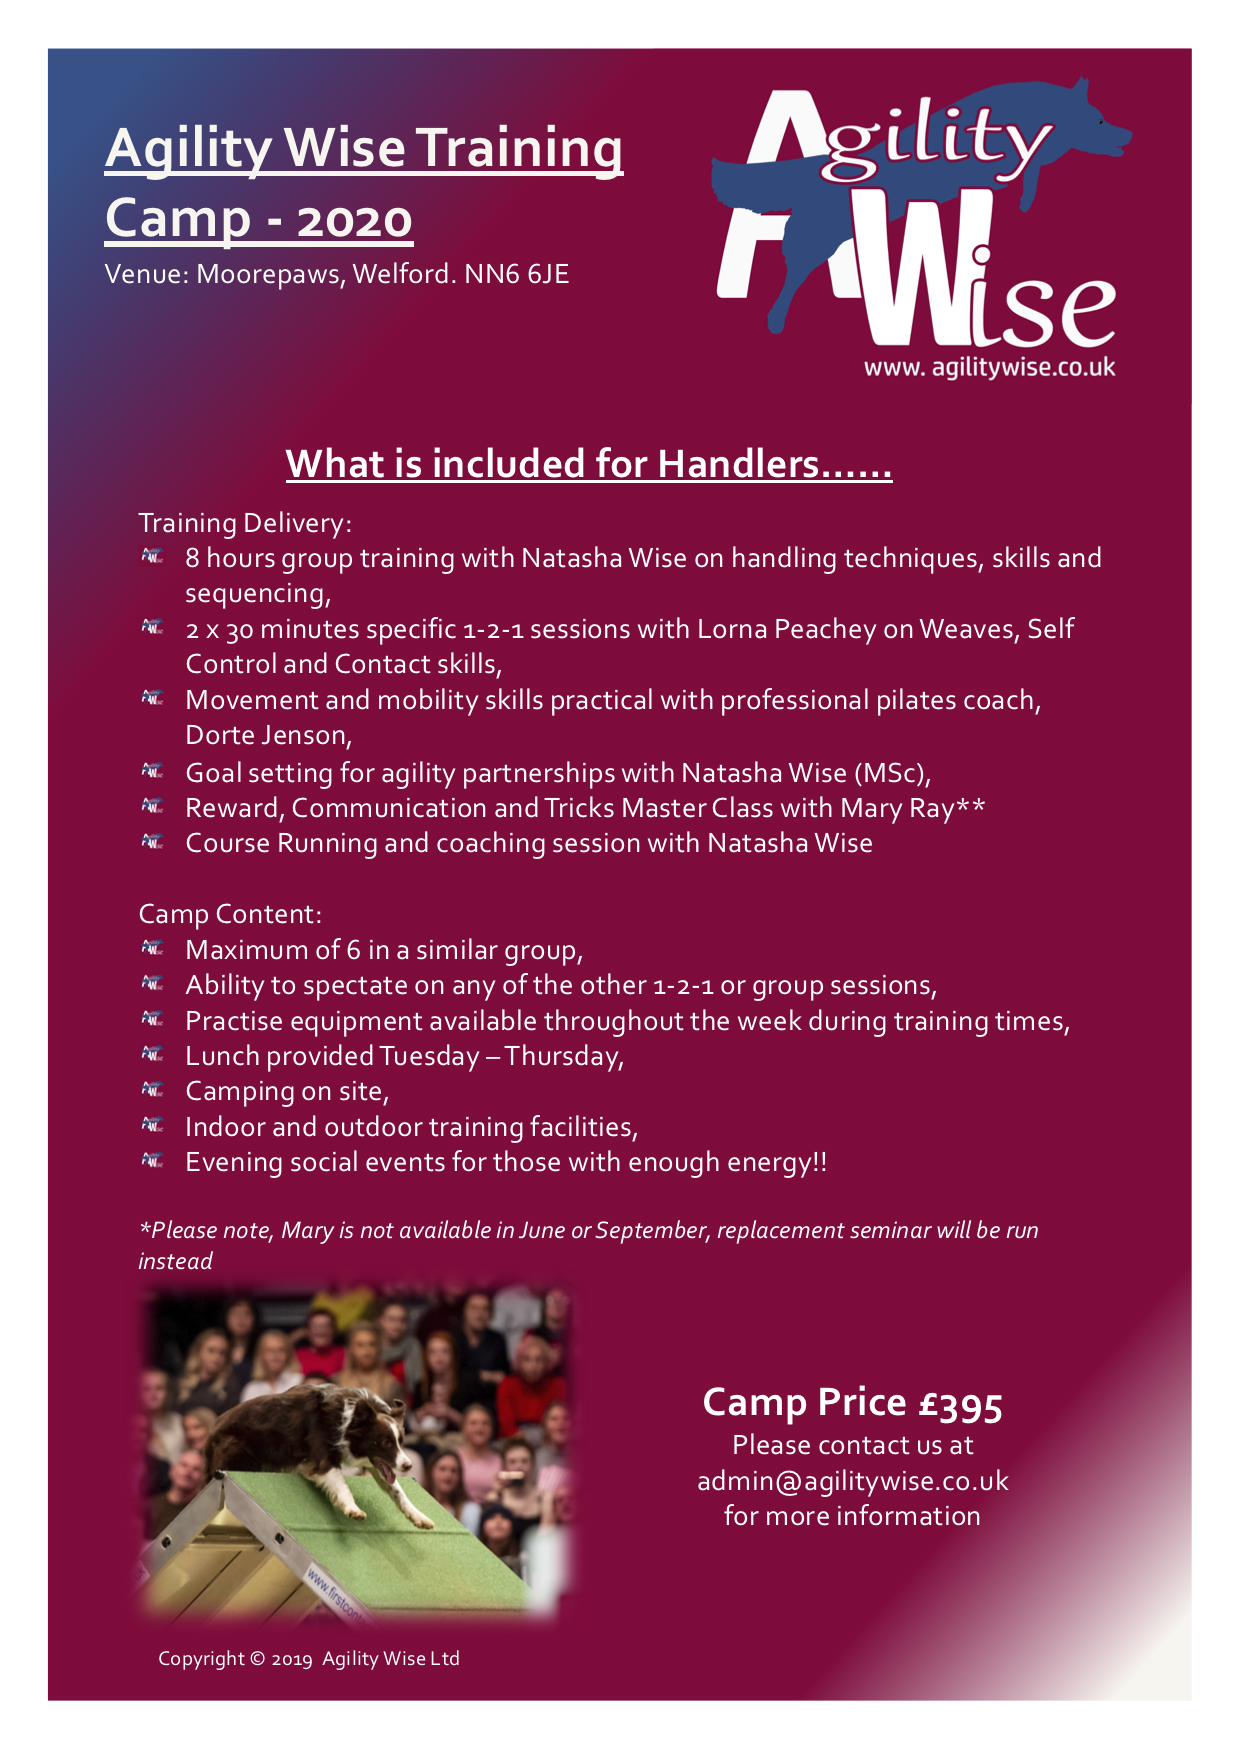 Camp Flyer - Click to view in detail